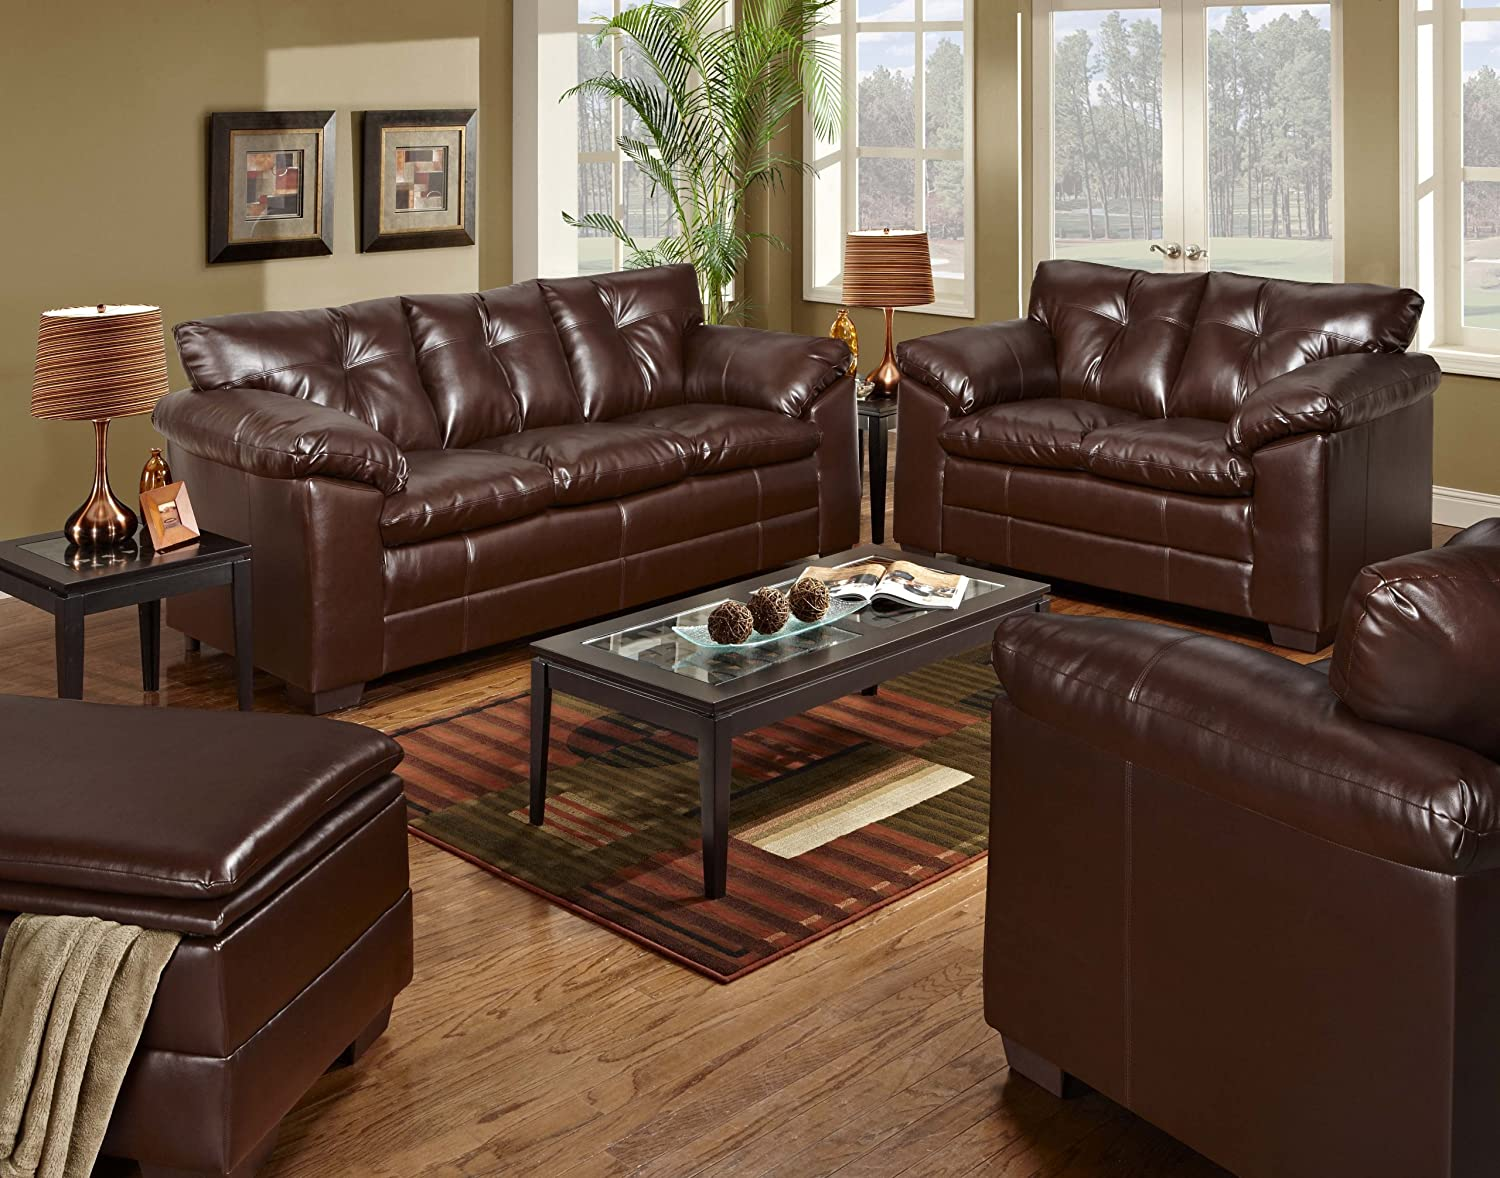 Amazon.com: Simmons Upholstery 6569 02 Sebring Coffeebean Bonded Leather  Loveseat: Kitchen U0026 Dining